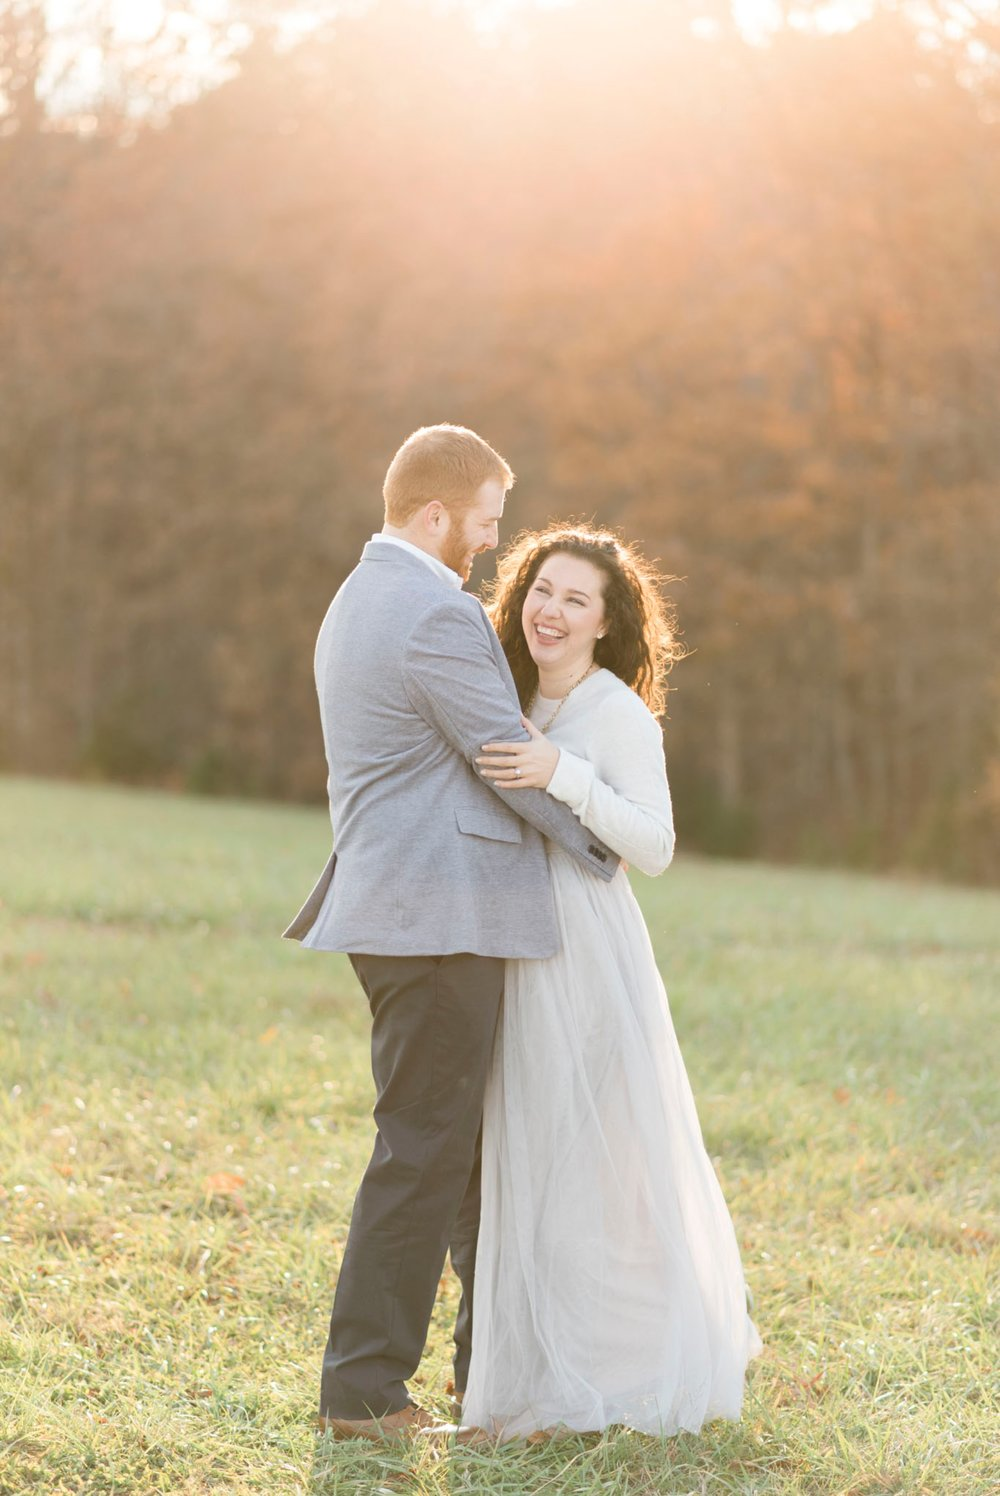 SorellaFarms_EngagementSession_VirginiaweddingPhotographer 25.jpg